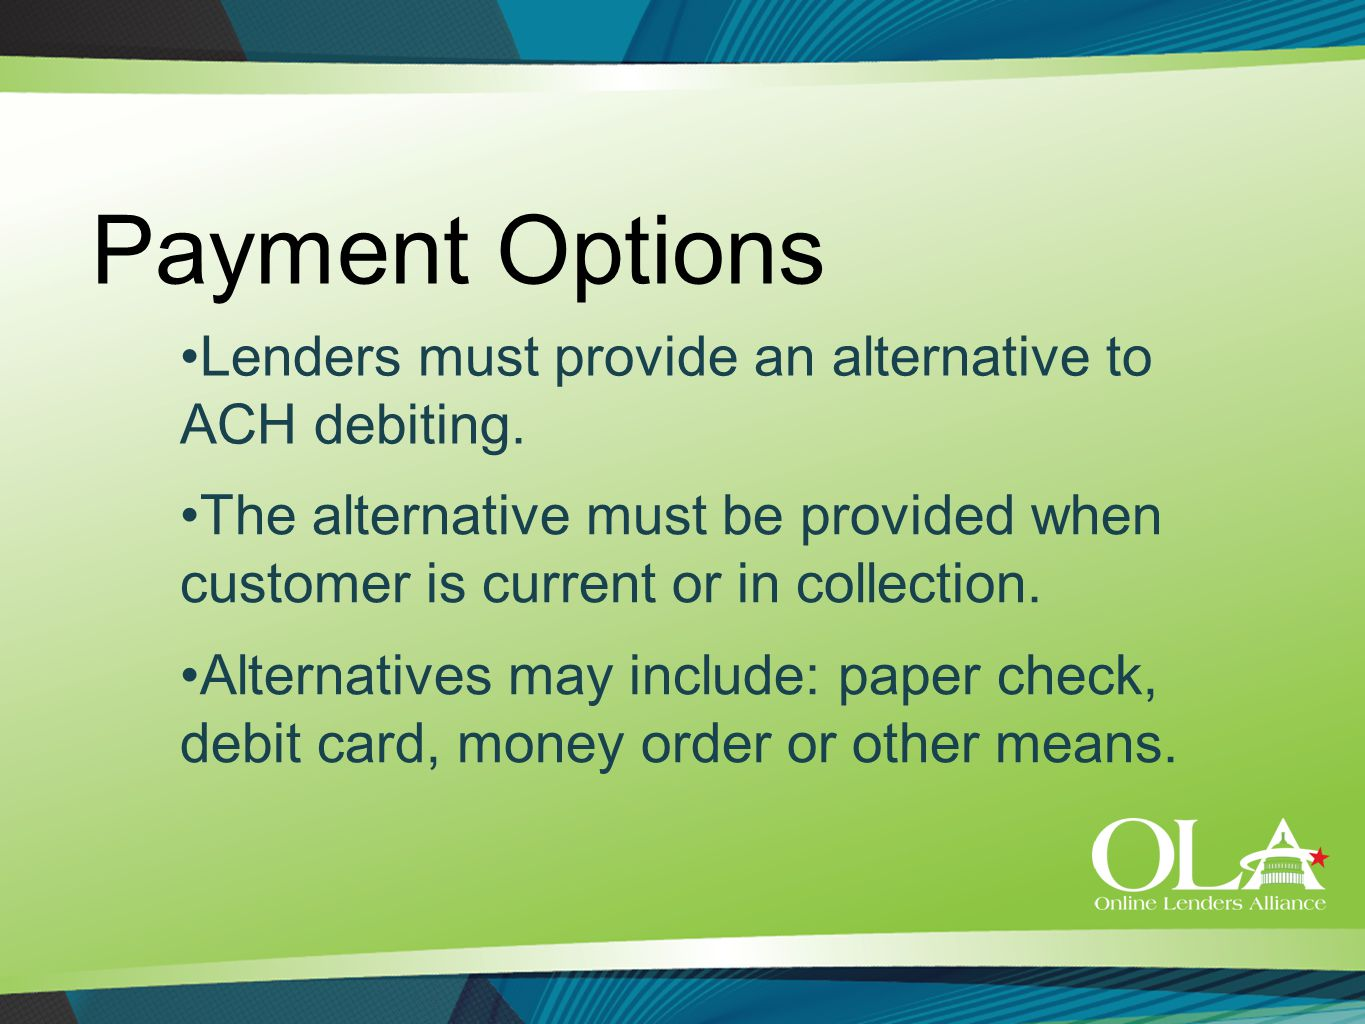 Payment Options The alternative must be provided when customer is current or in collection. Lenders must provide an alternative to ACH debiting. Alter